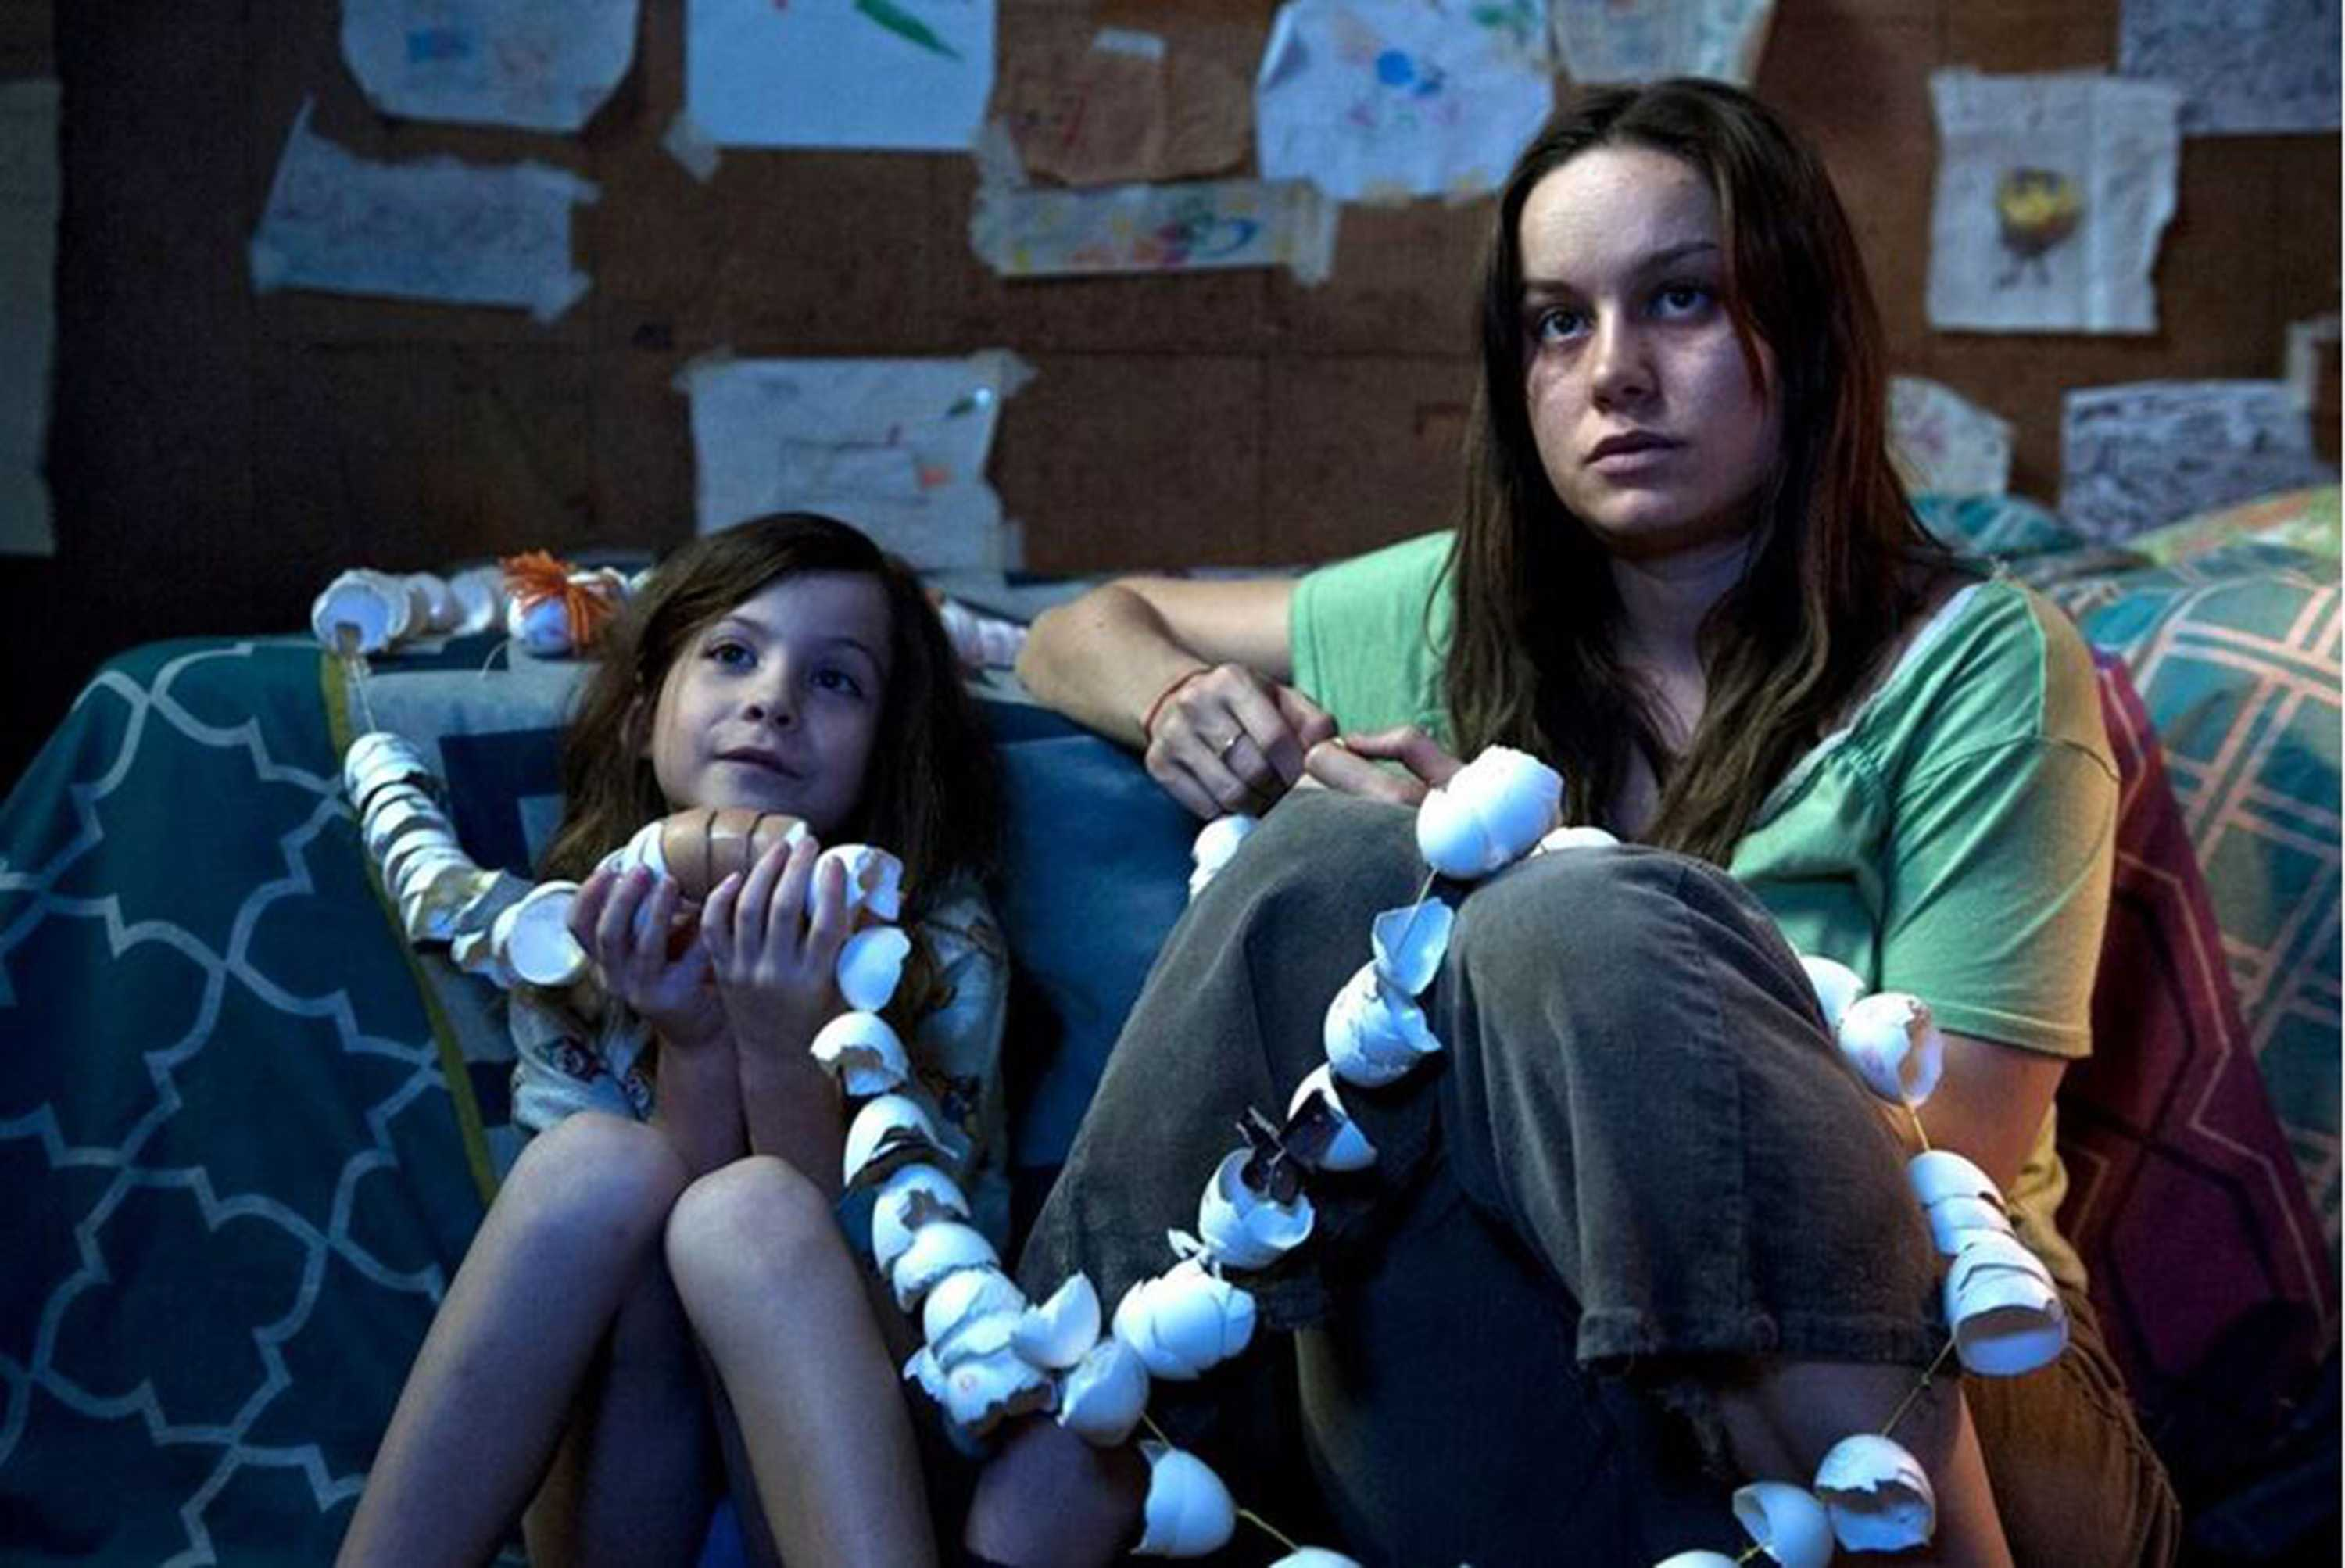 Brie Larson and Jacob Tremblay star in